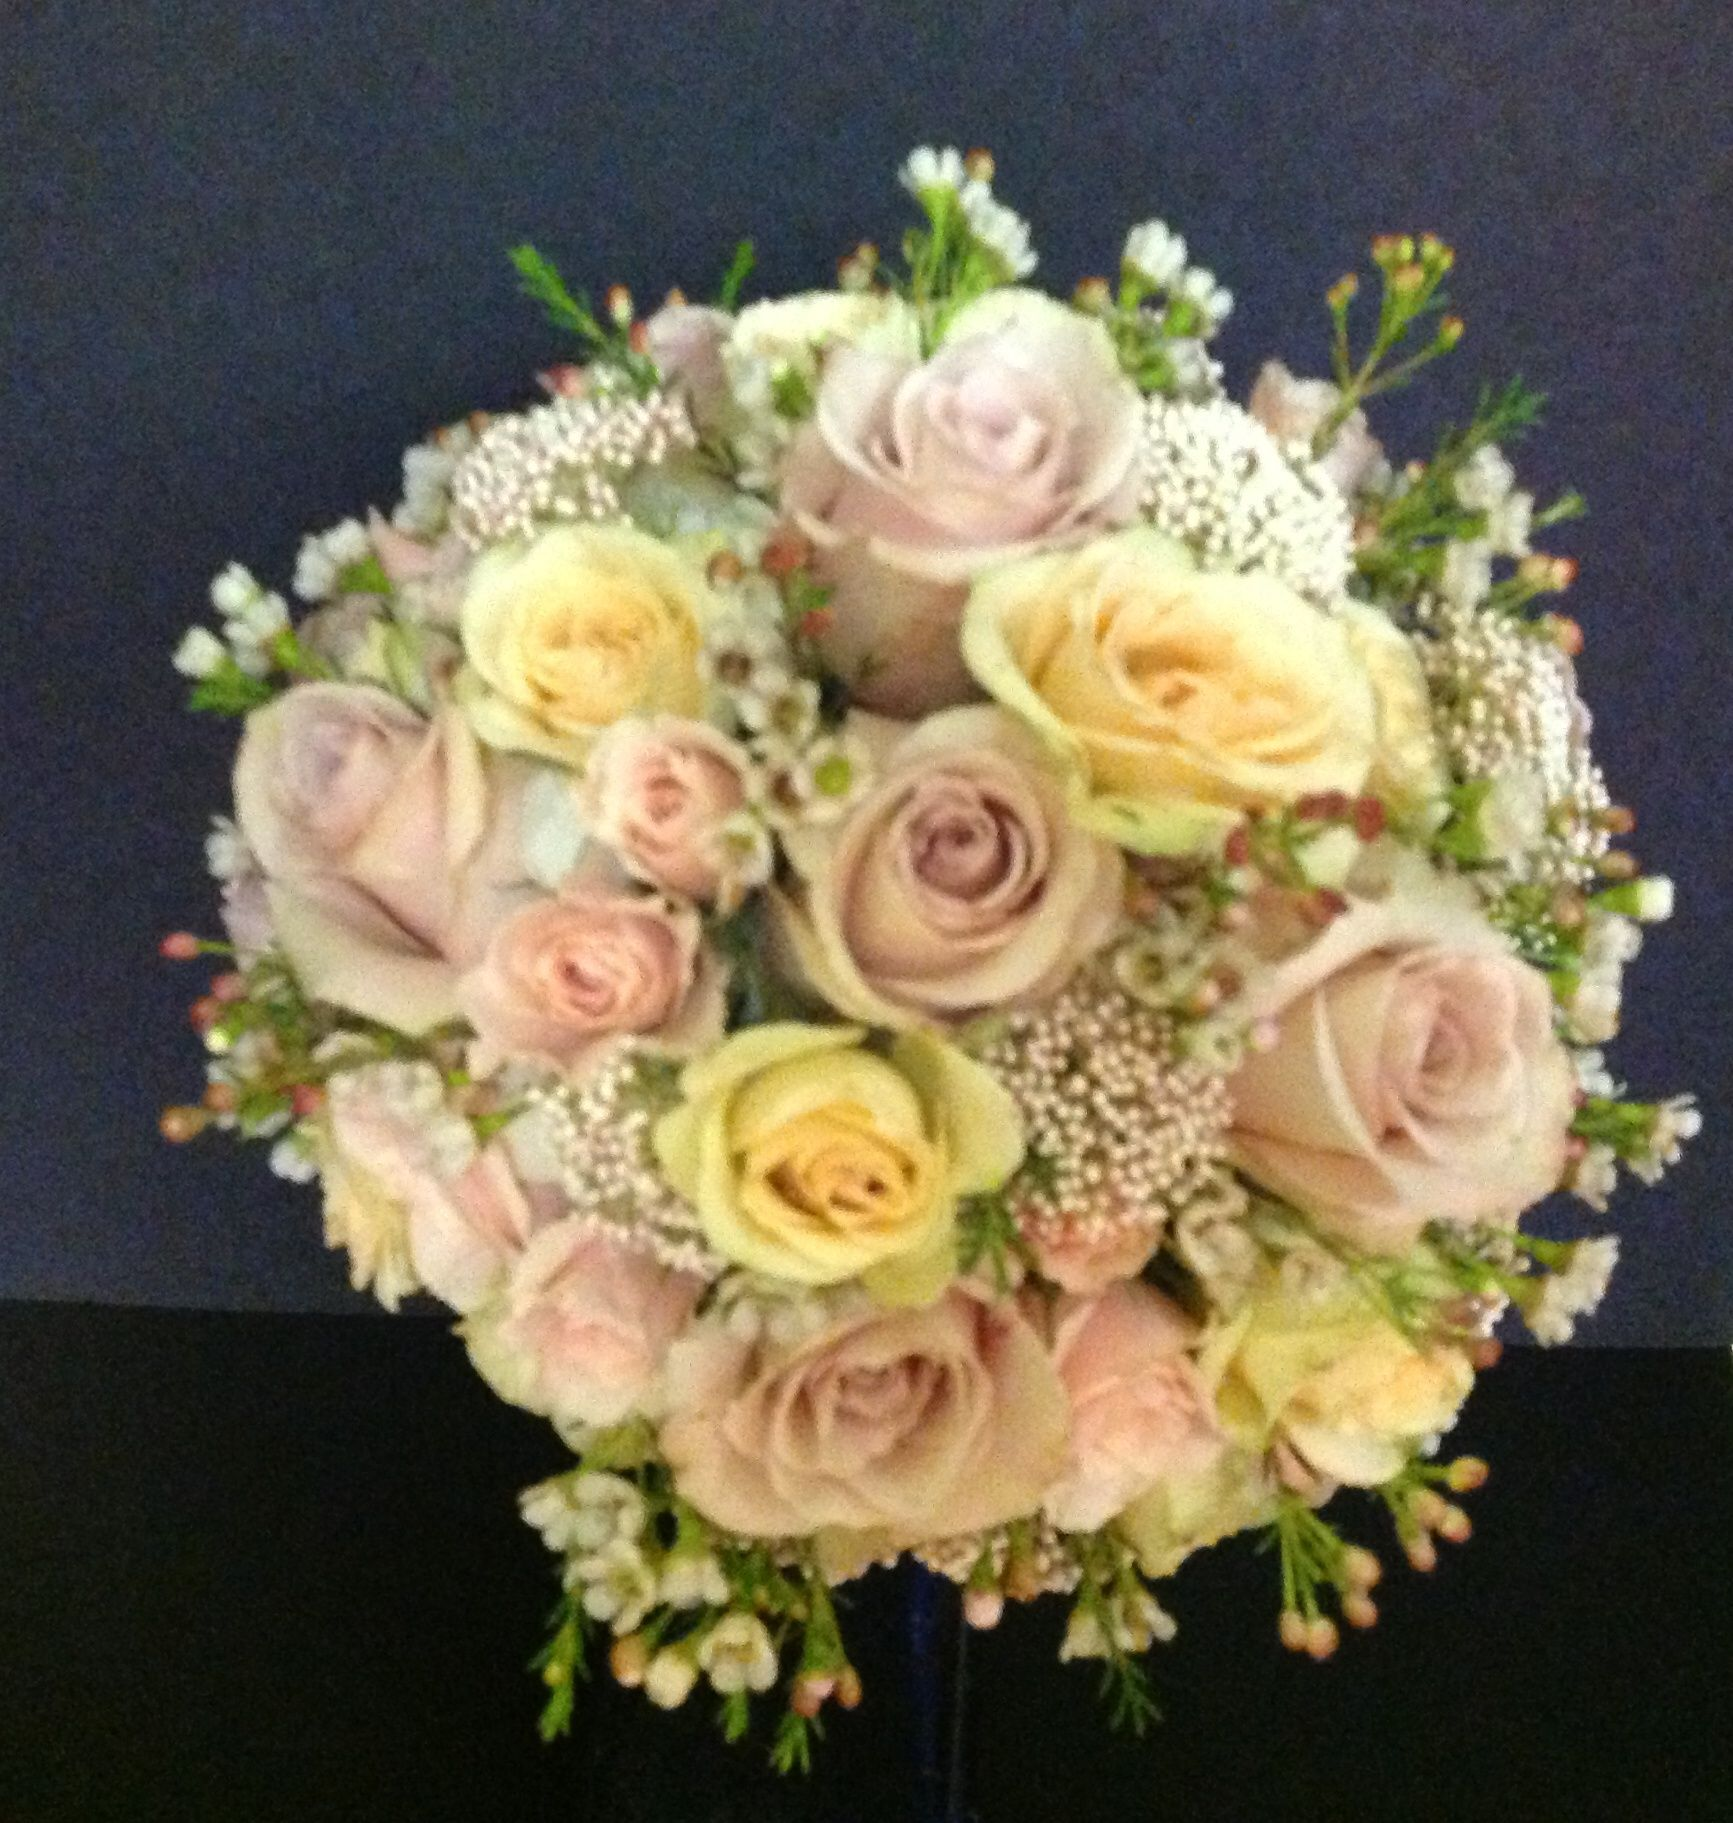 Champagne and Porcelina roses are combined with hyacinth, blush pink waxflower, and riceflower in this stunning bouquet.  See more wedding bouquets, centerpieces, and more at www.jeffmartinsweddings.com